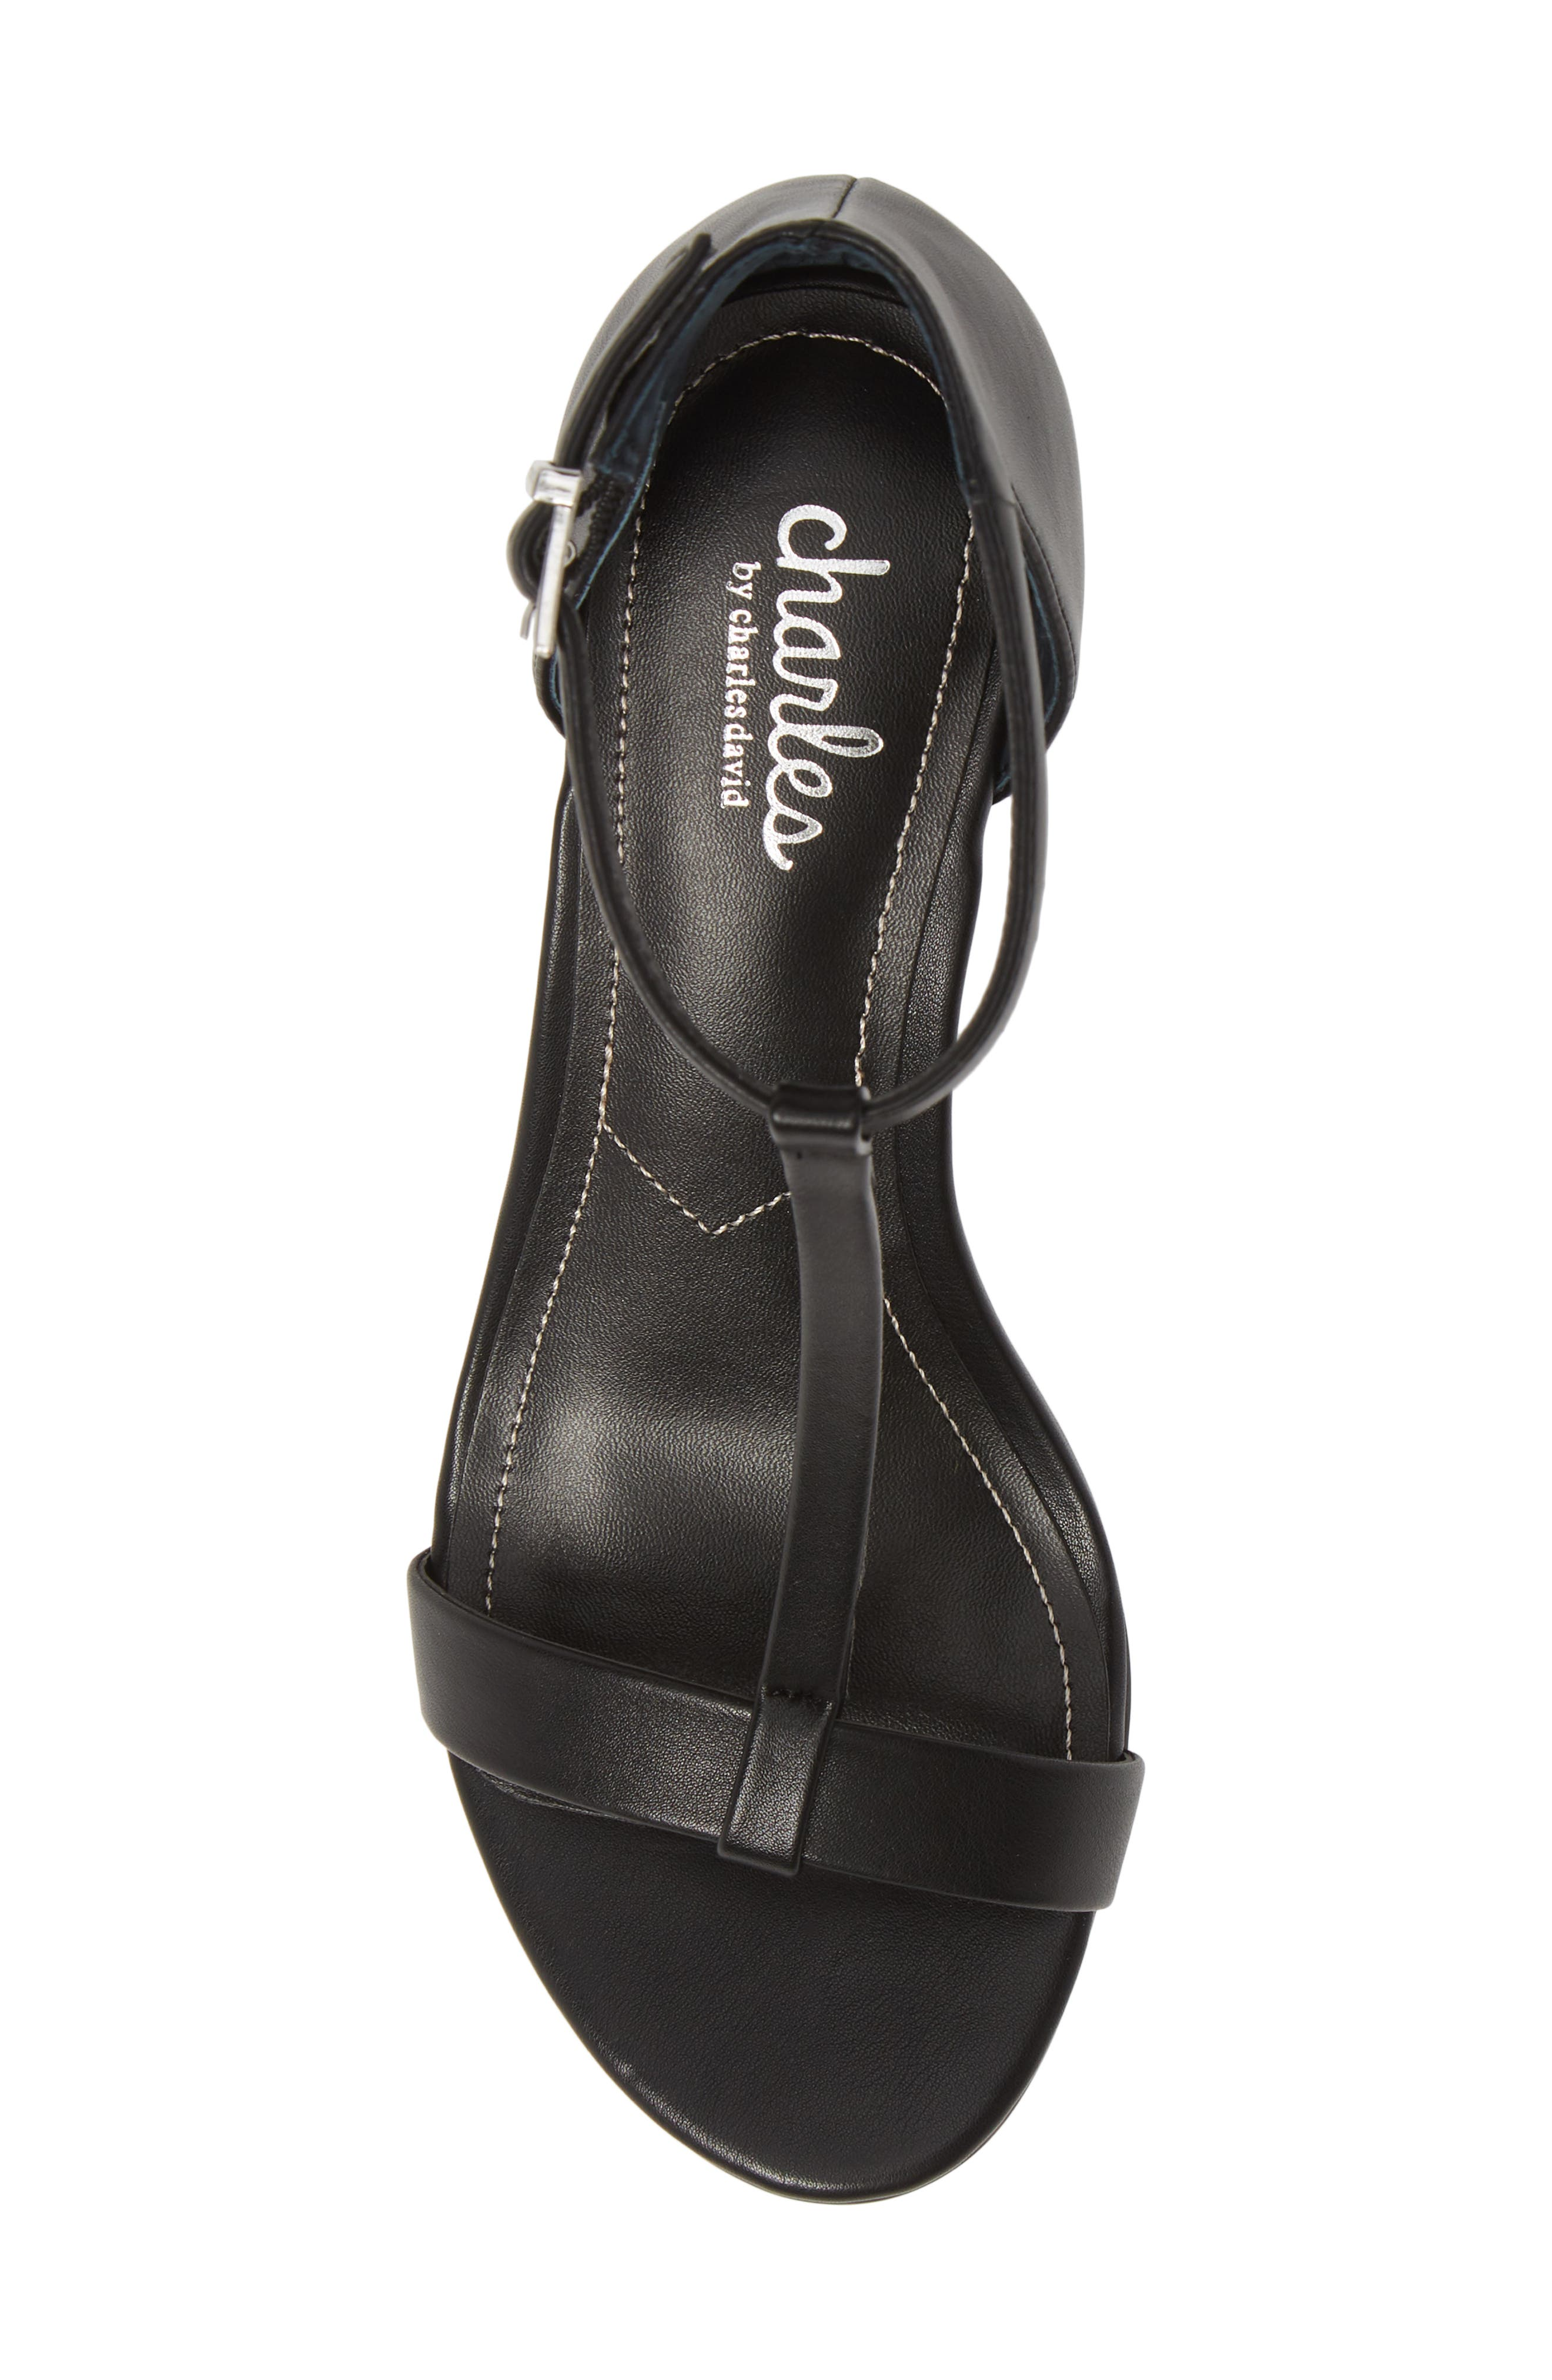 CHARLES BY CHARLES DAVID, Georgette Wedge Sandal, Alternate thumbnail 5, color, BLACK FAUX LEATHER